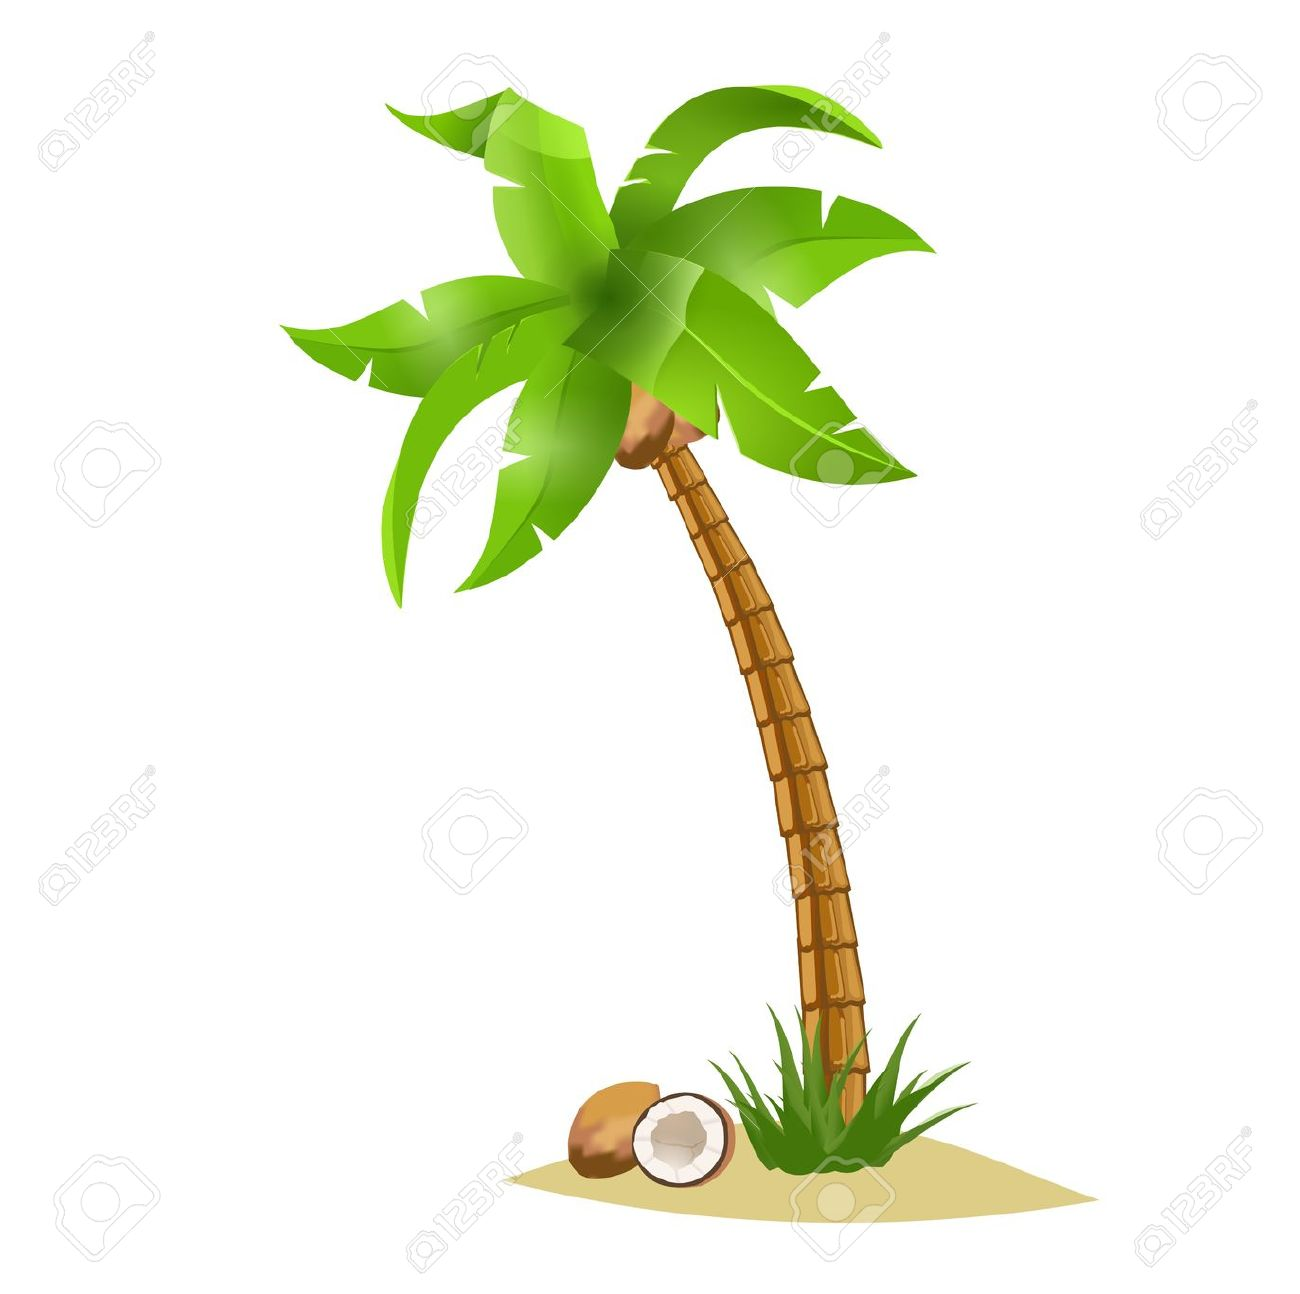 Coconut tree clipart images.